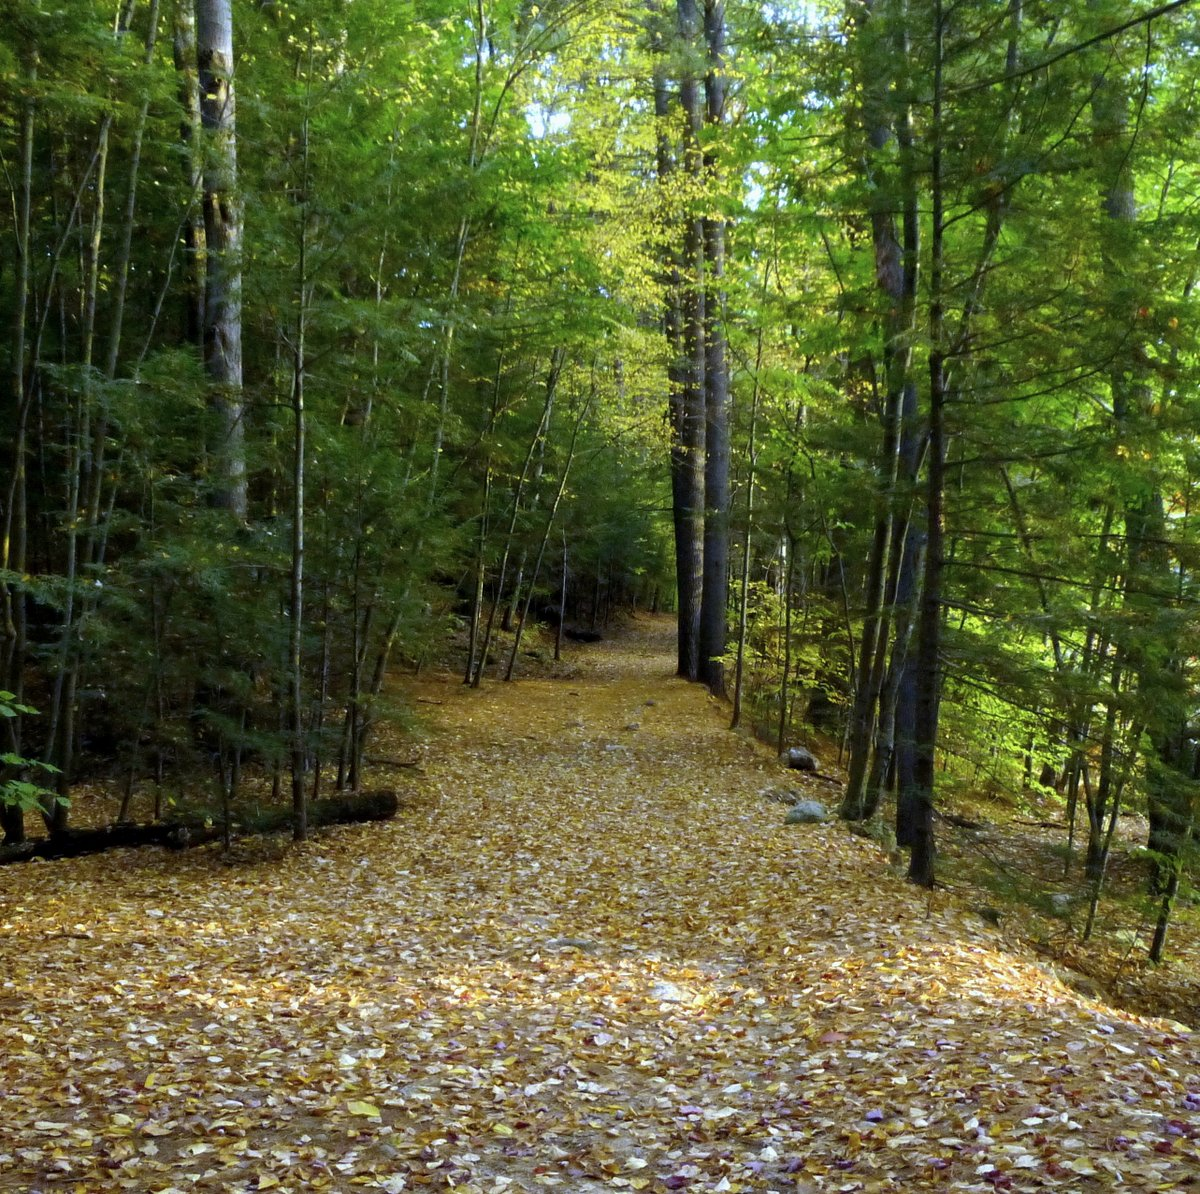 7. Forest Path